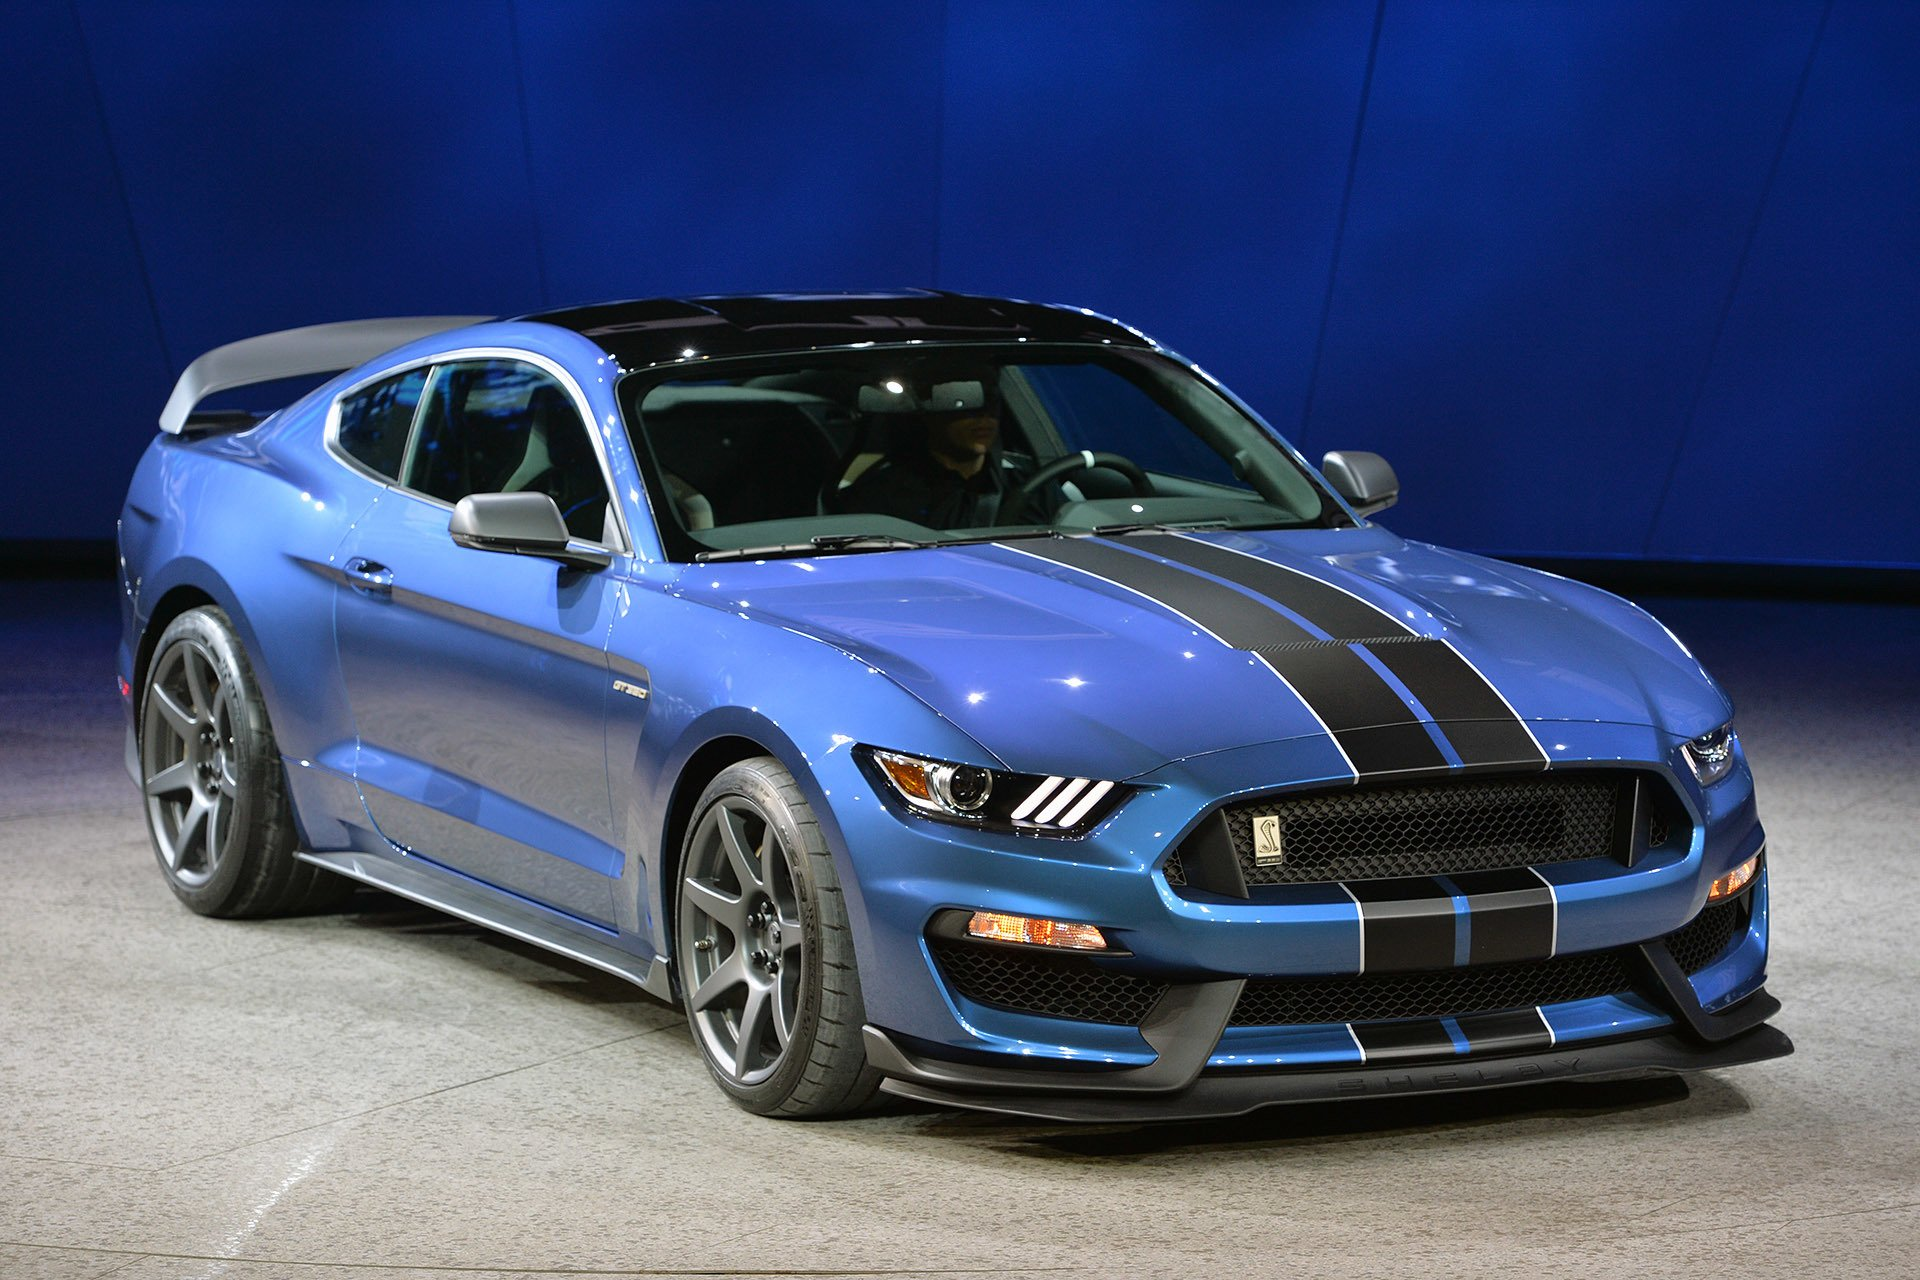 ford mustang shelby gt350r 2015 dark cars wallpapers. Black Bedroom Furniture Sets. Home Design Ideas